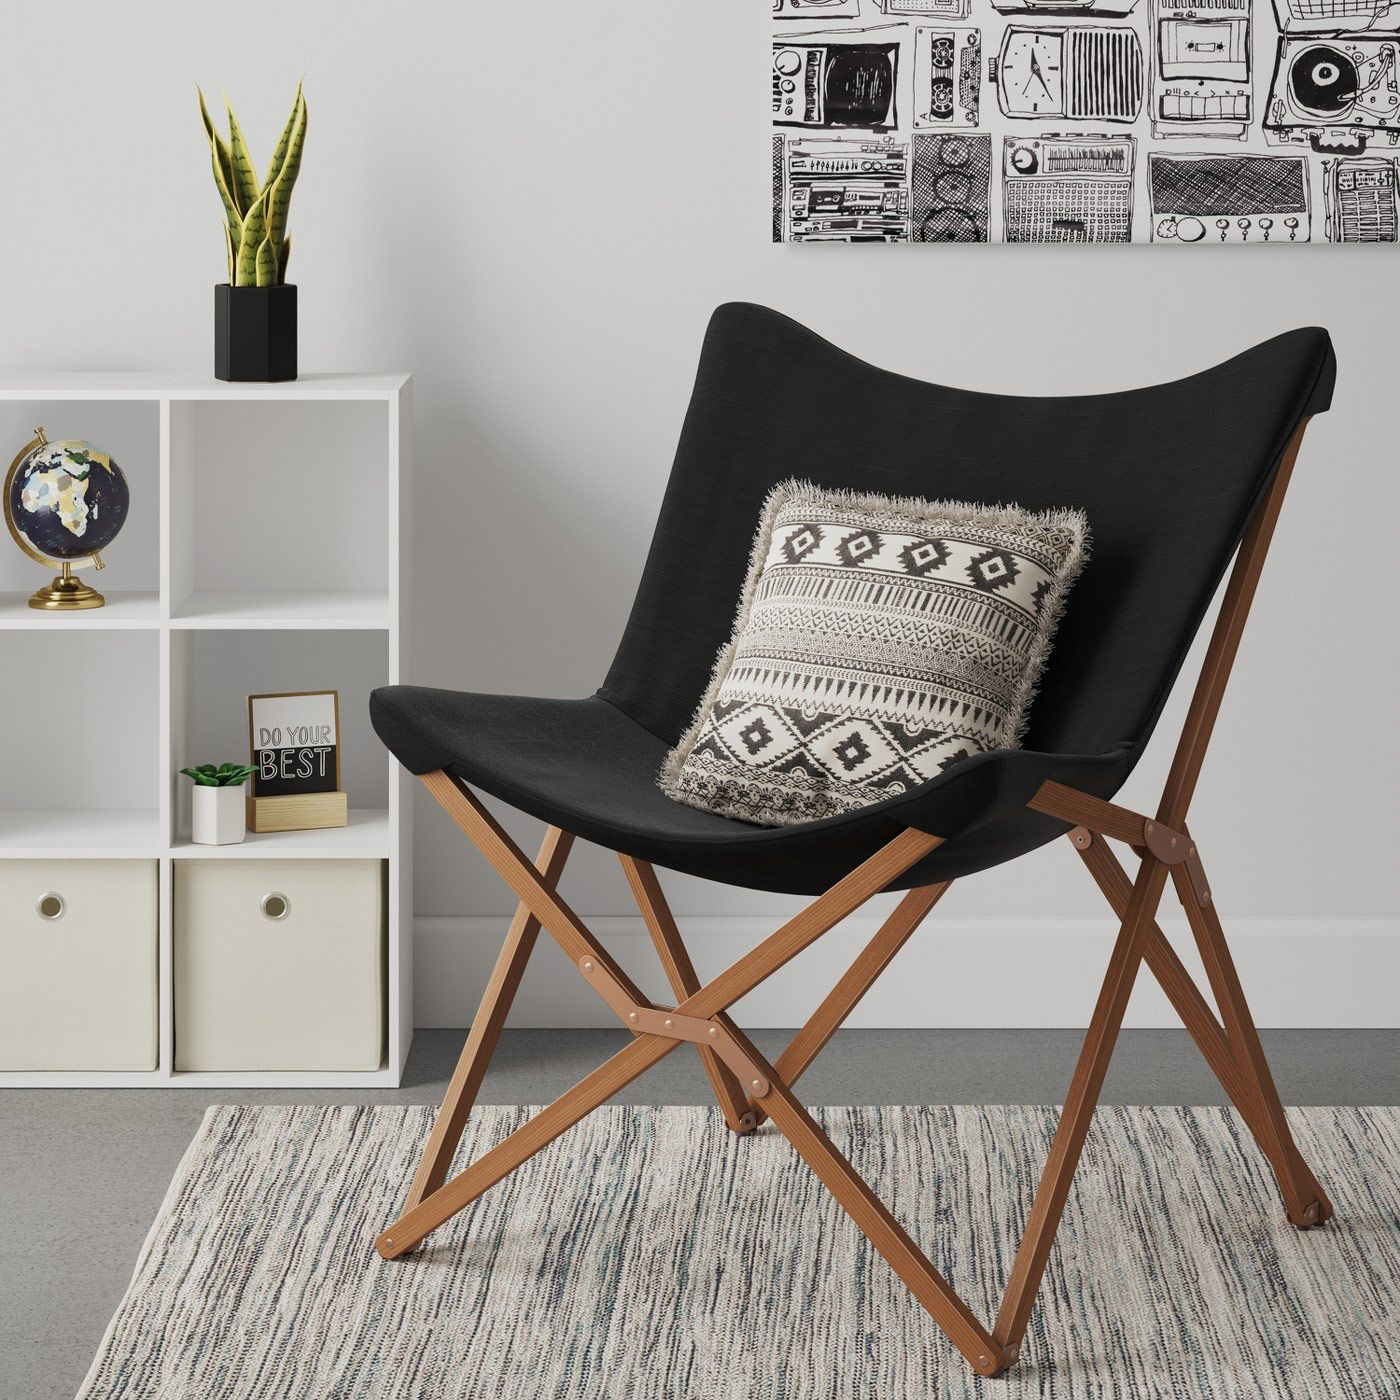 Room Essentials Wood Erfly Chair